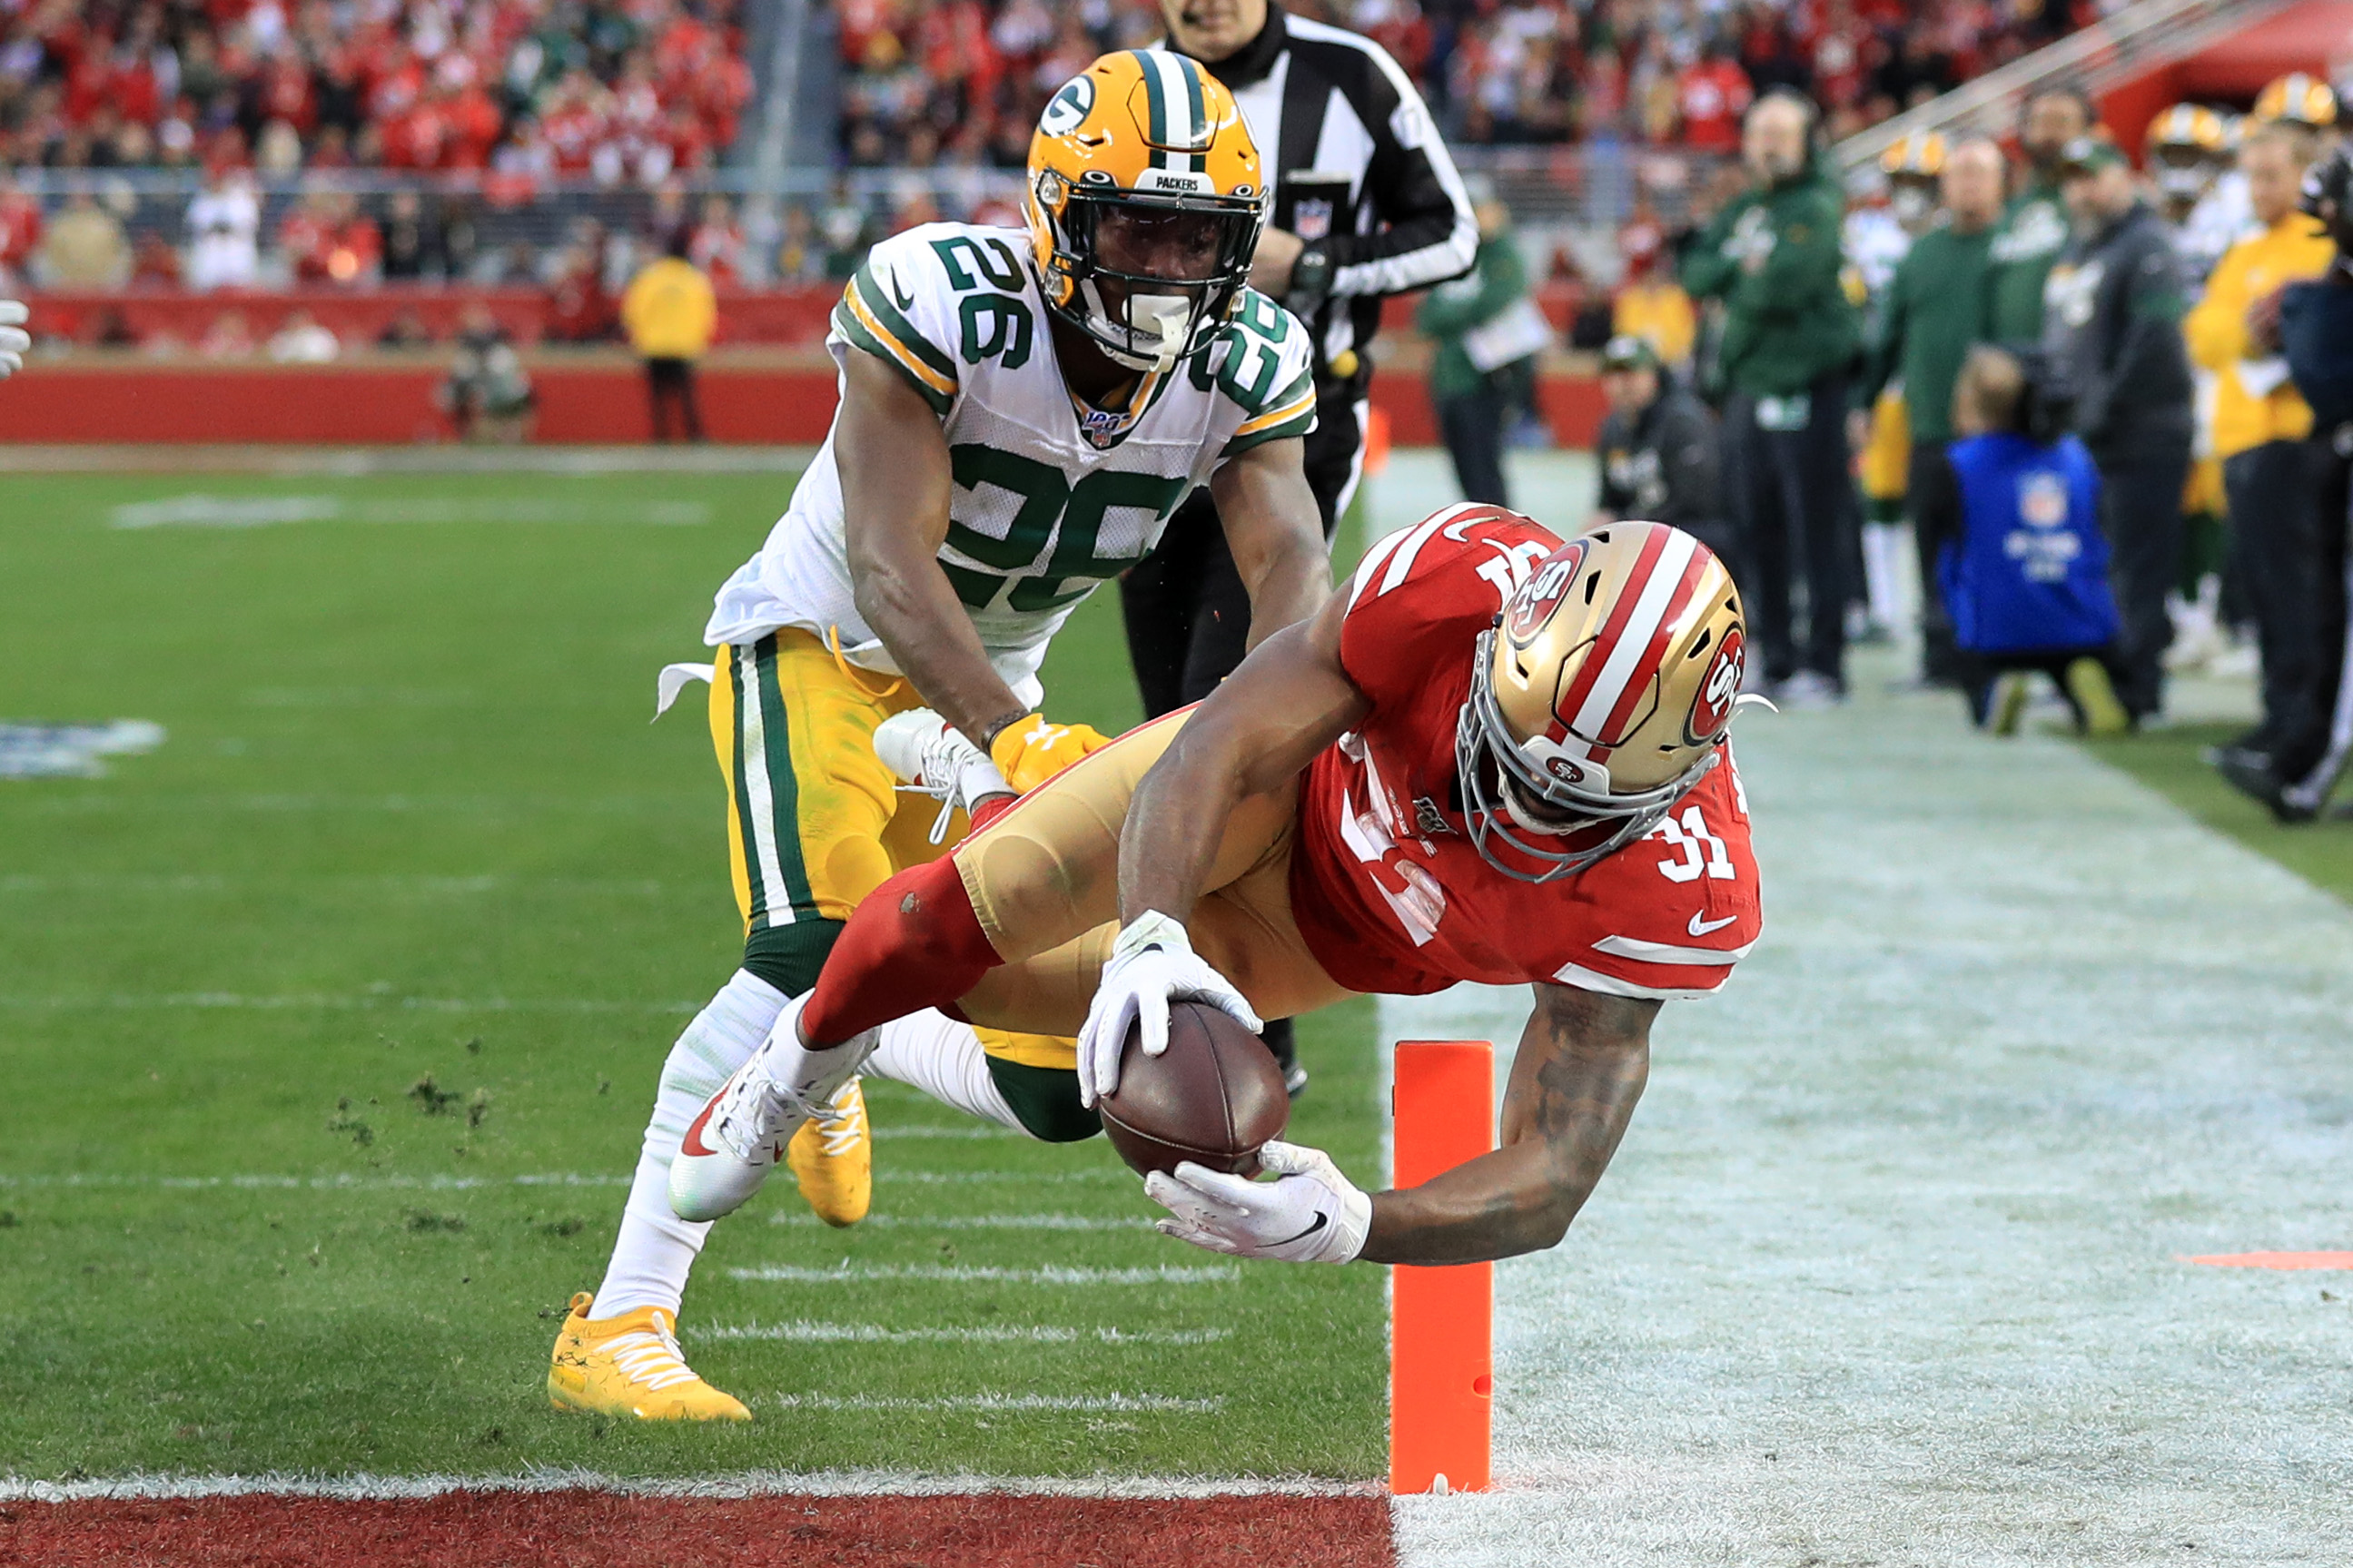 Raheem Mostert of the San Francisco 49ers dives into the end zone for a touchdown against Darnell Savage of the Green Bay Packers in the first half during the NFC Championship game at Levi's Stadium on January 19, 2020 in Santa Clara, California.